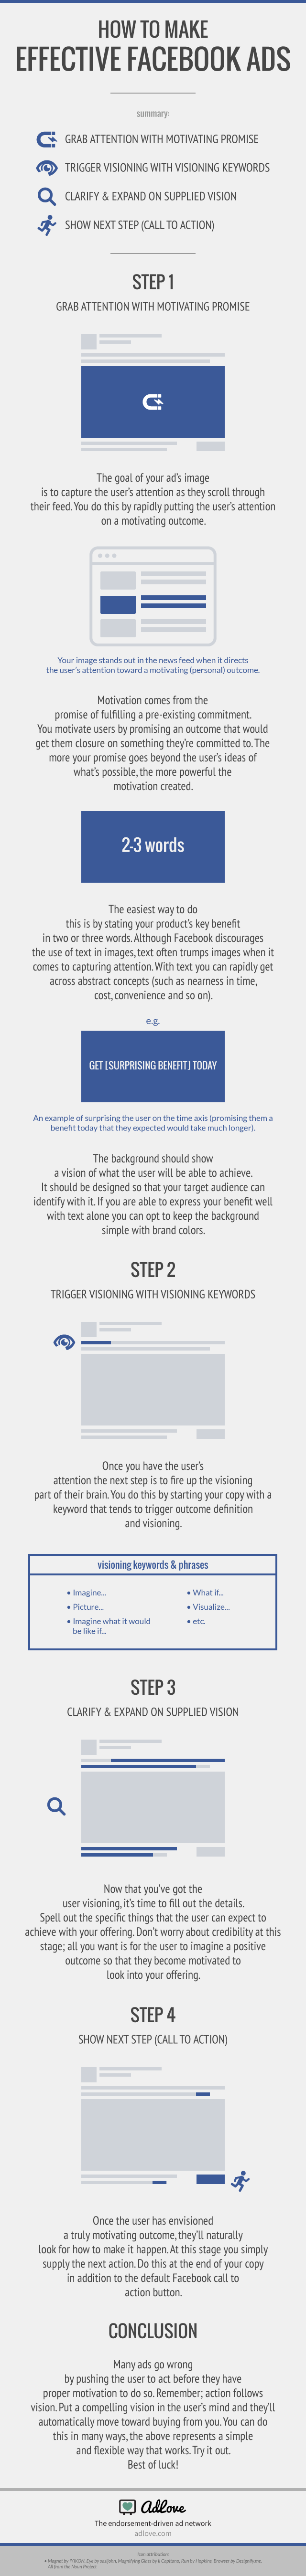 Effective Facebook ads infographic